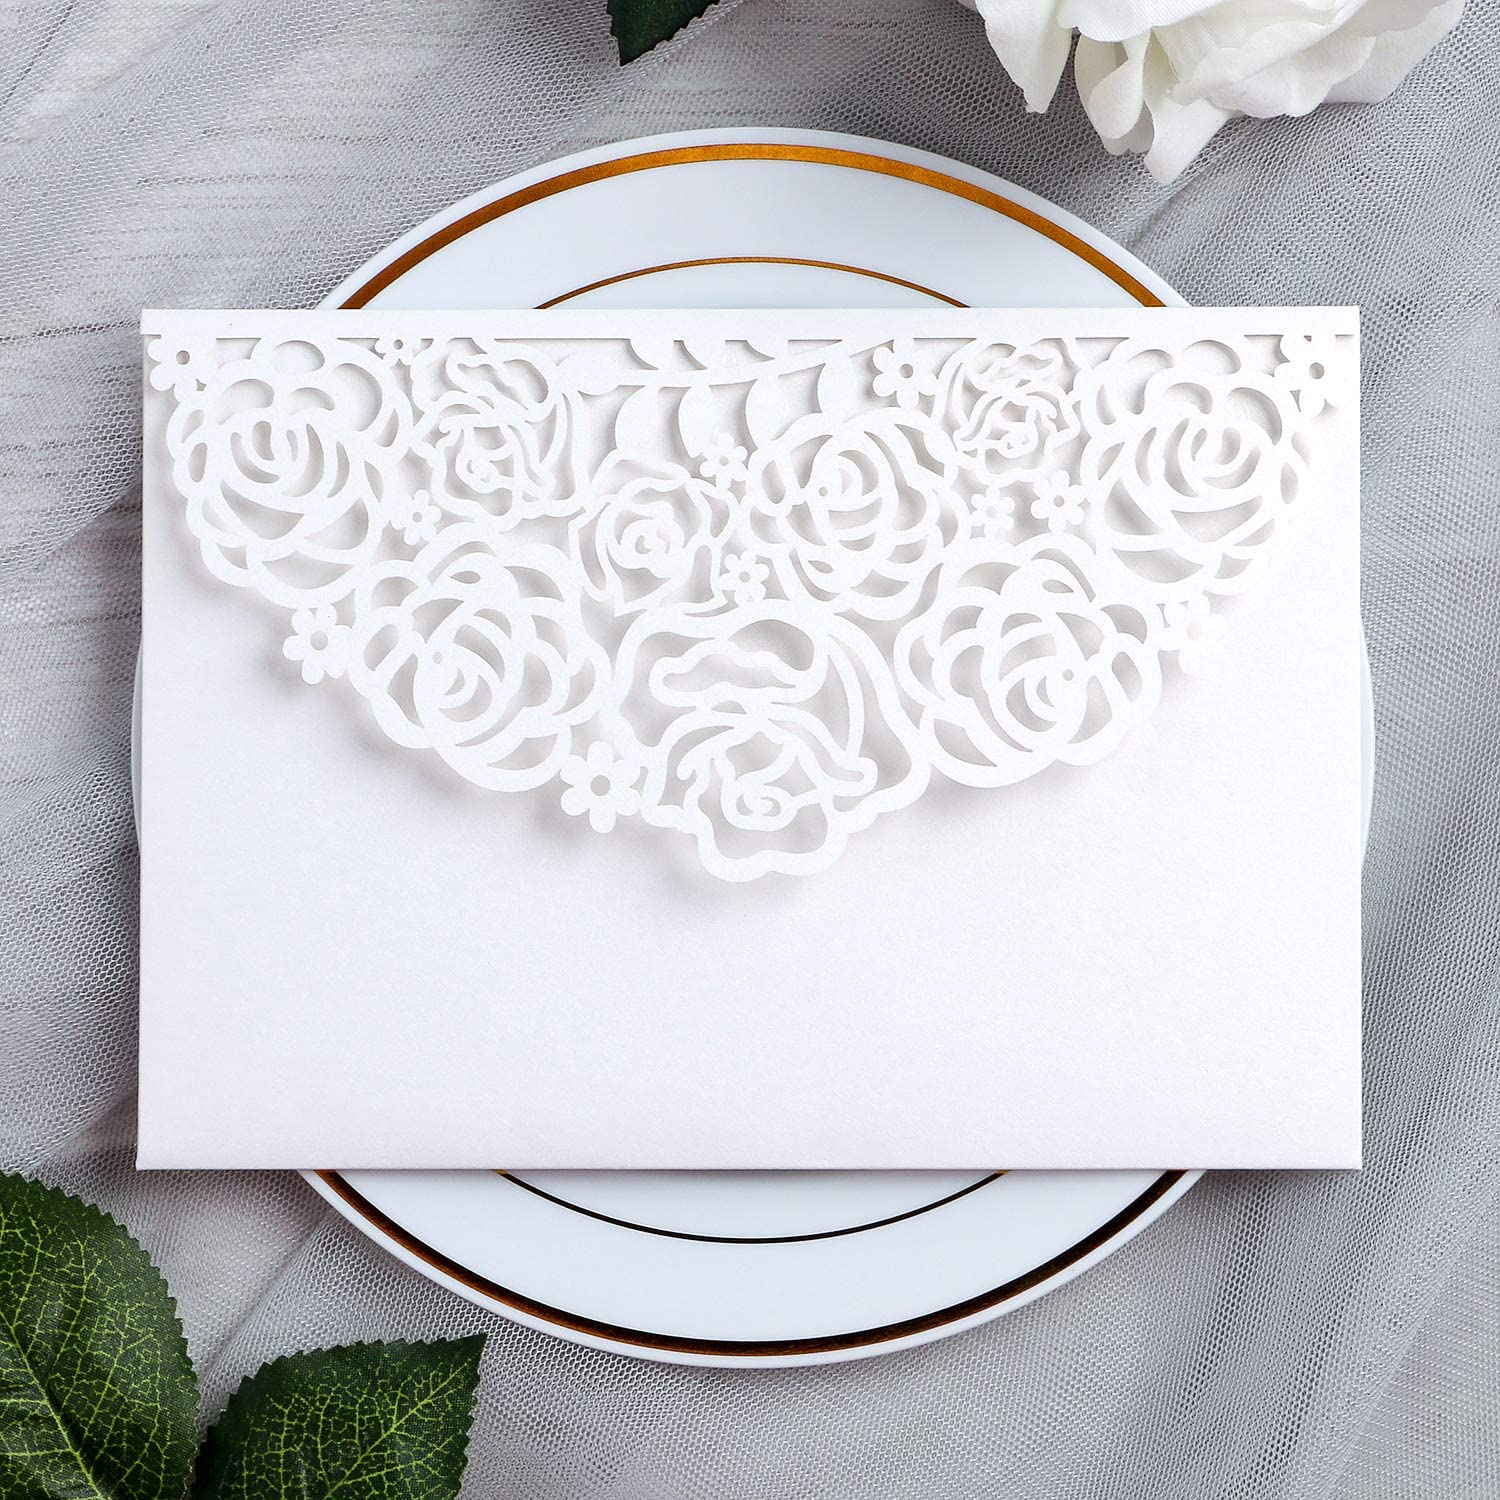 YIMIL 20 Pcs 5.12 x 7.21 inch Tri-fold Laser Cut Wedding Invitation Pocket for Wedding Quinceanera Bridal Shower Baby Shower Party Invite (White)